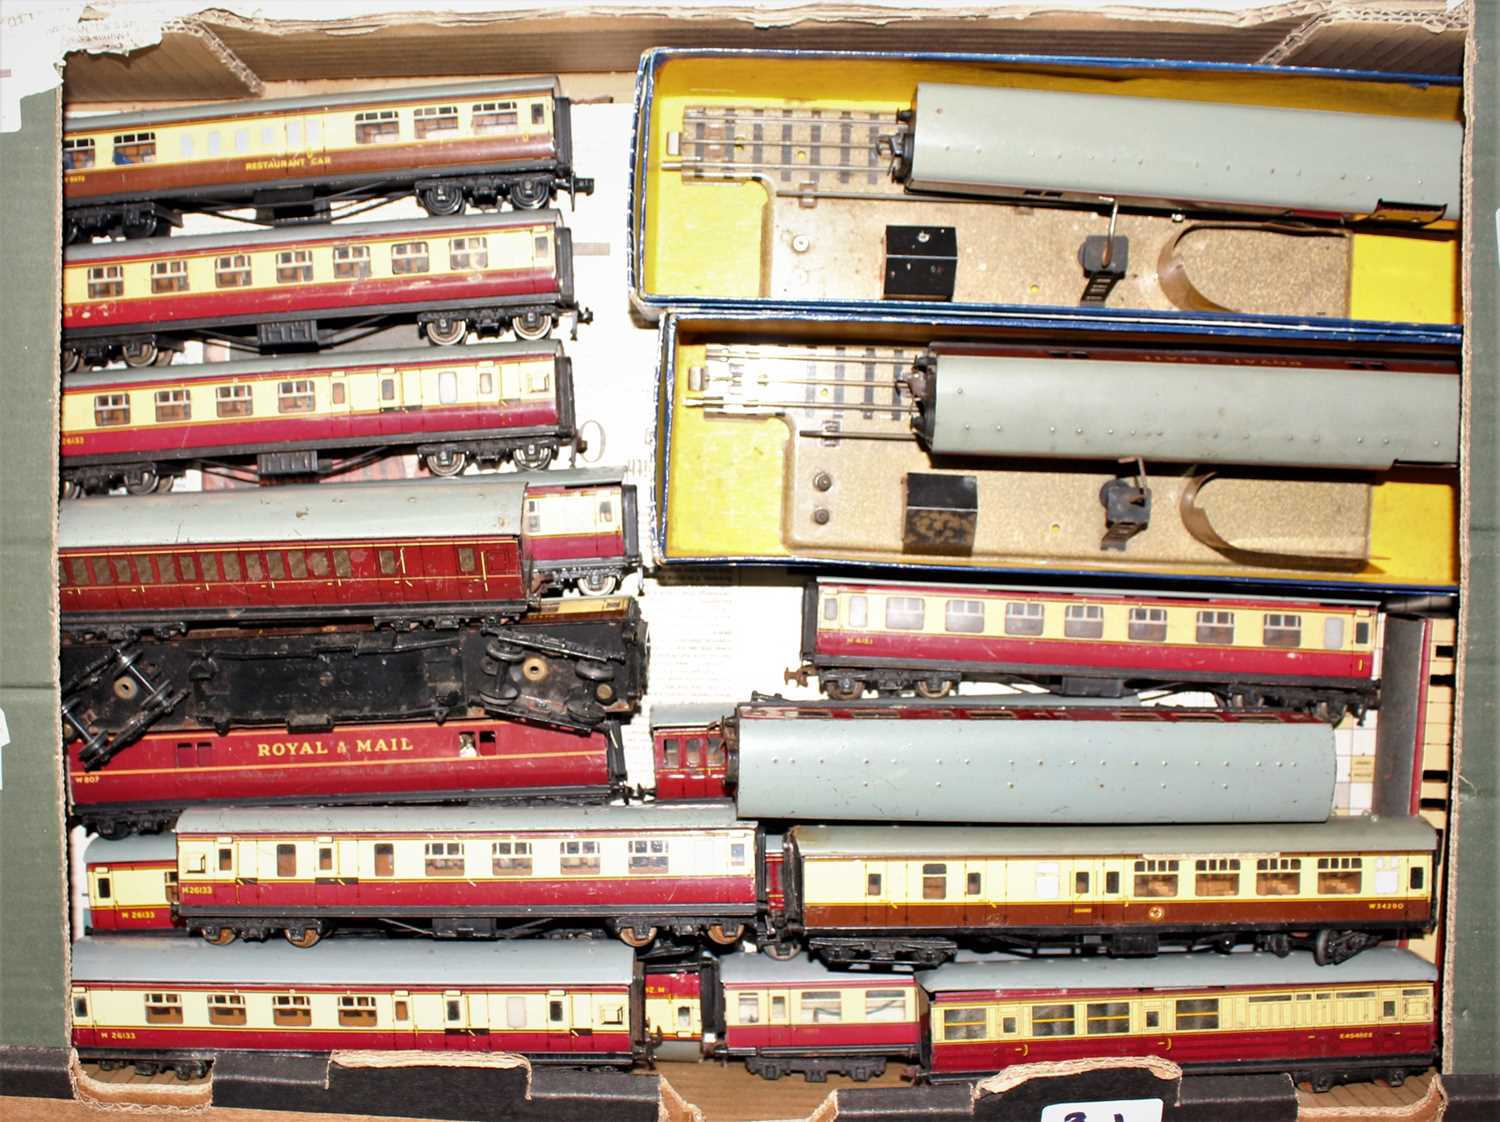 Two trays containing a quantity of various Hornby Dublo and 00 scale rolling stock and - Image 2 of 3